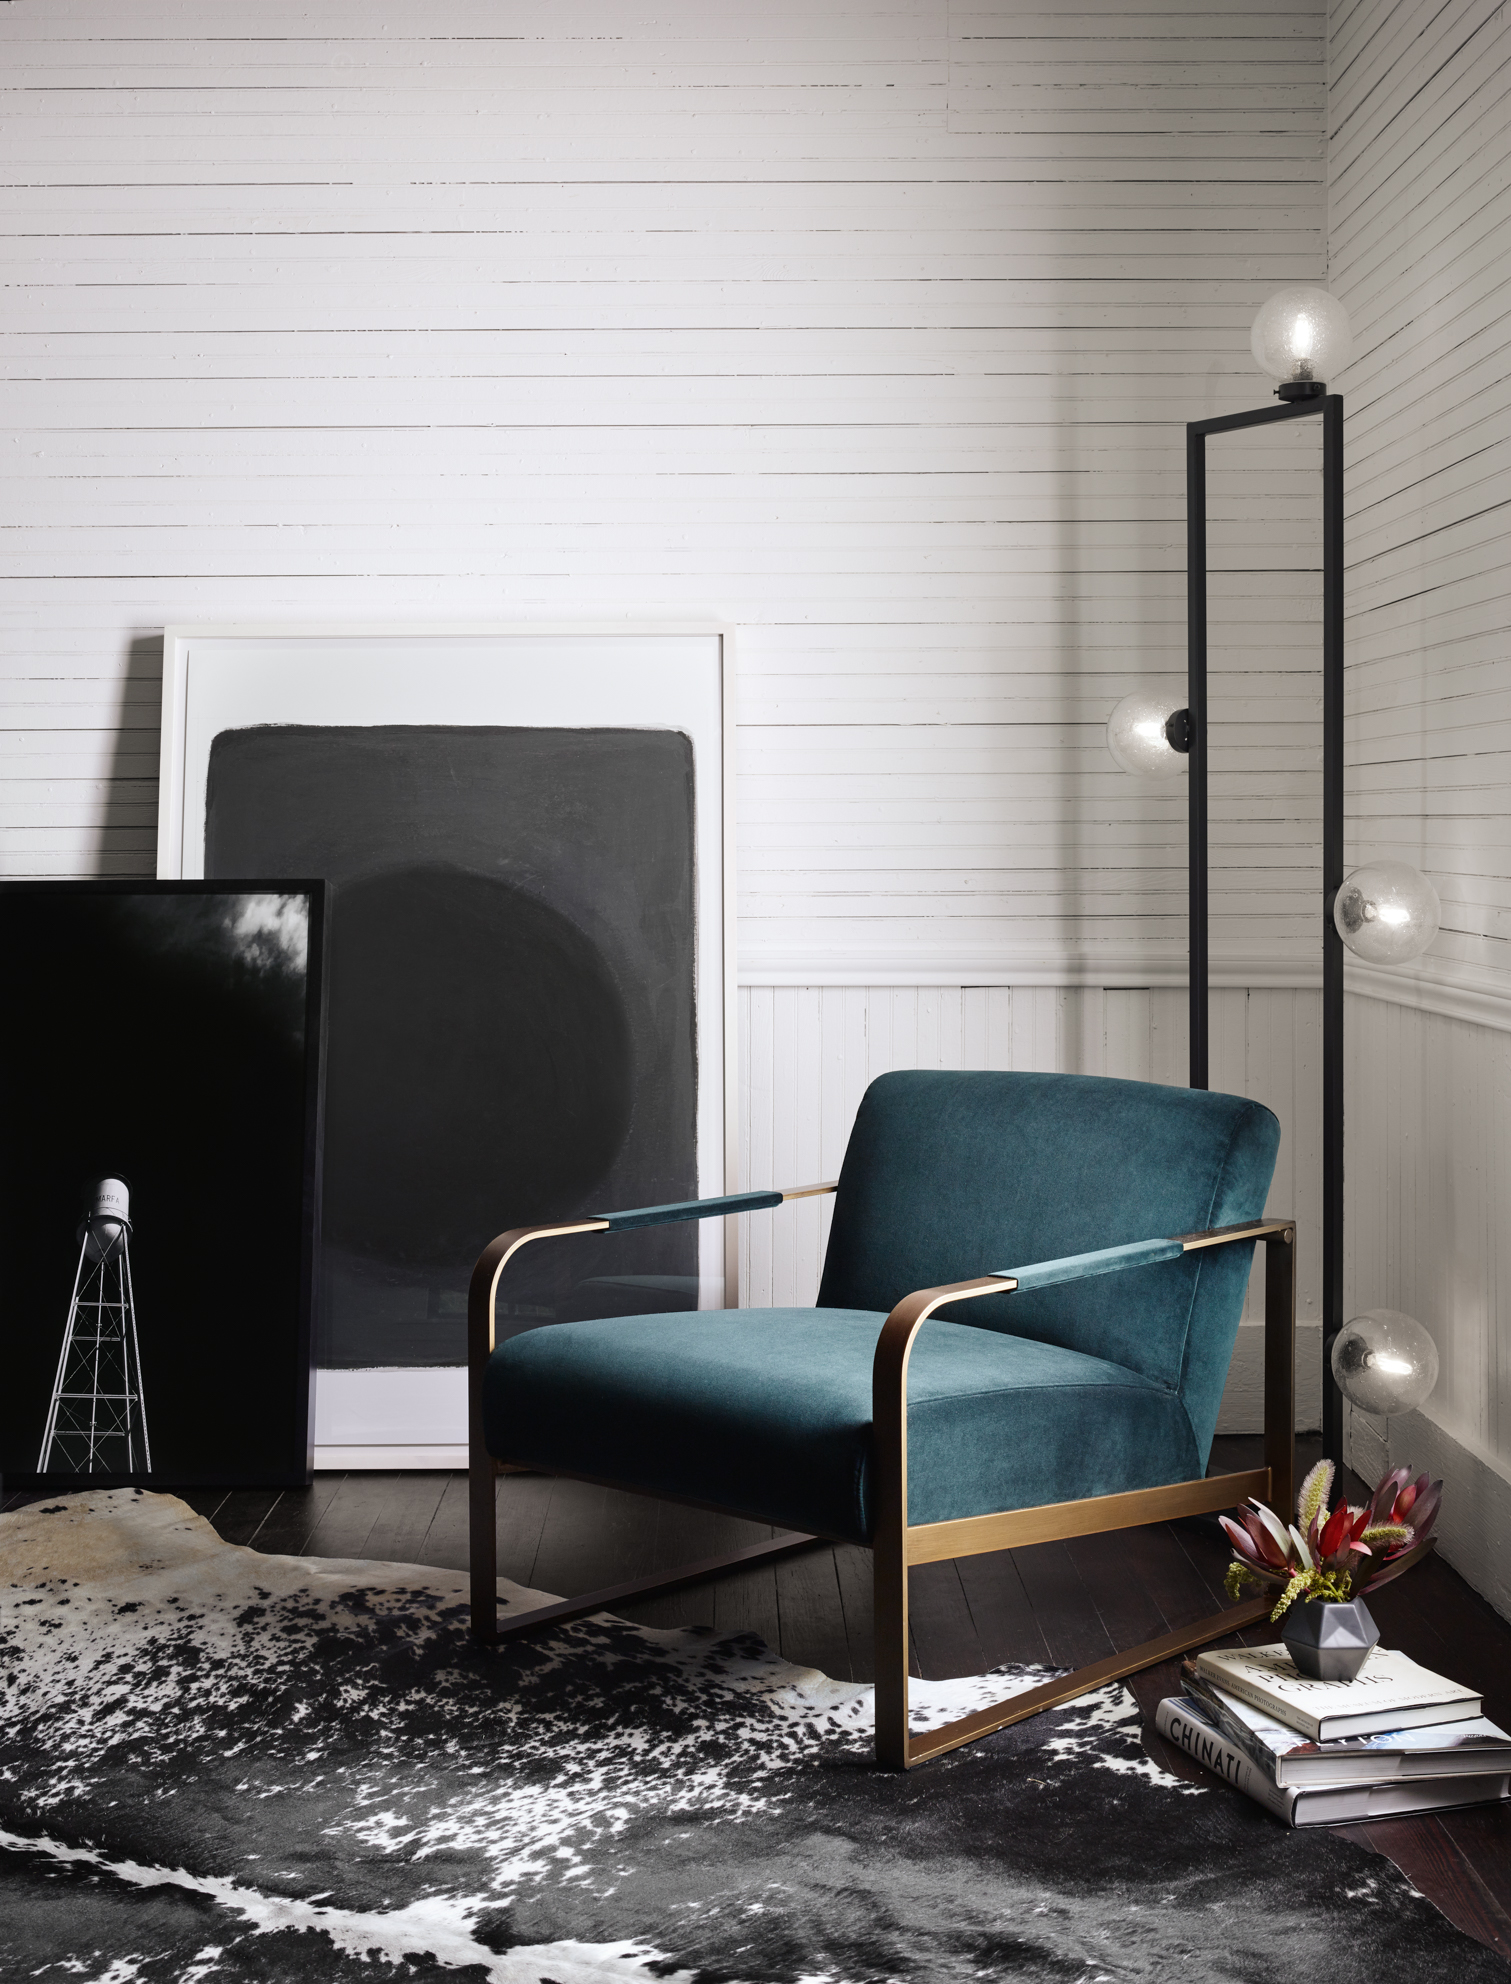 four club chairs in living room how to choose a rug for lookbook gallery jules velvet upholstered emerald chair clara old hollywood bubble floor lamp leaning art